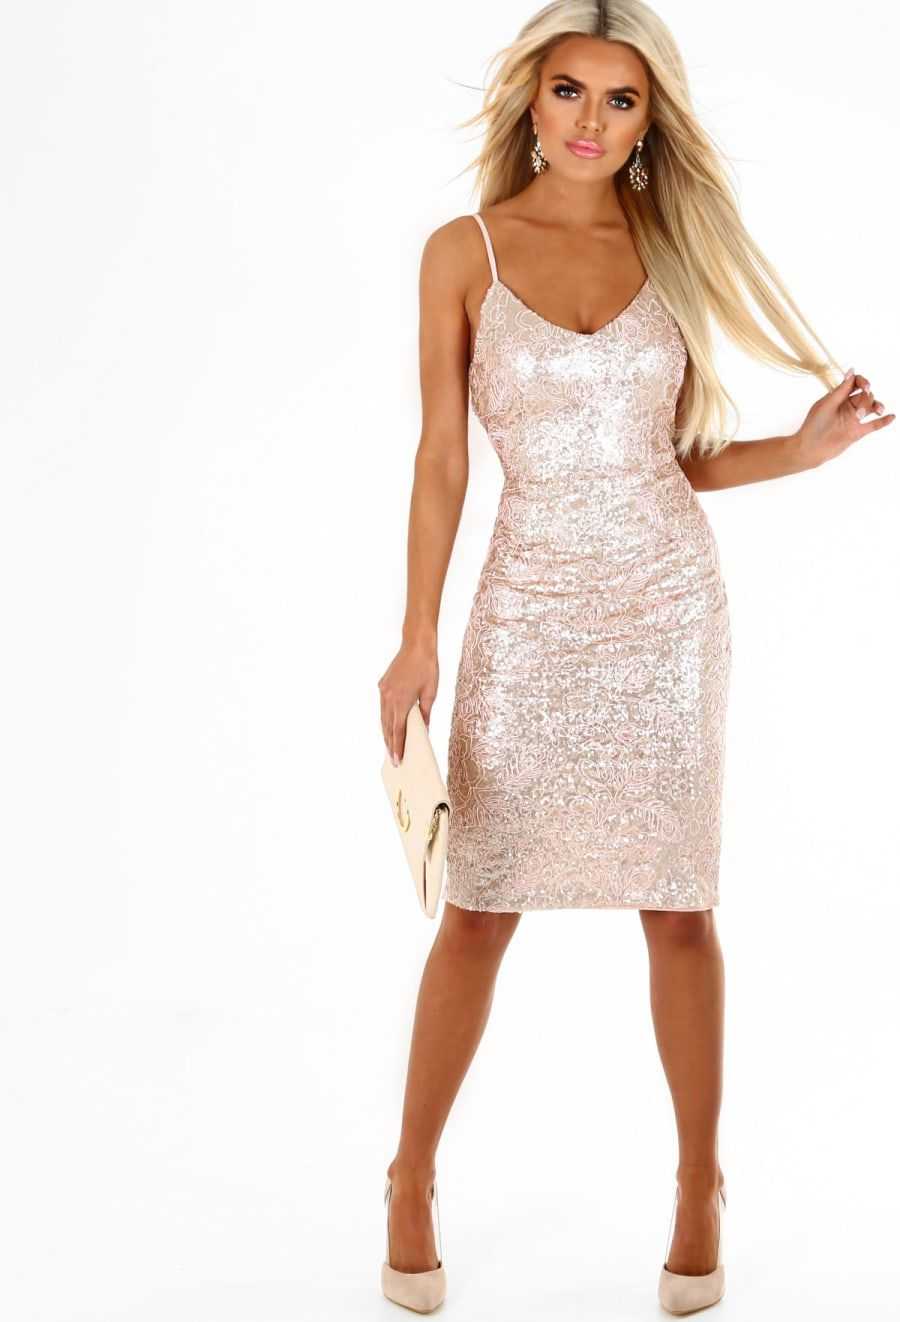 228fe8b208cdc Shine Your Light Rose Gold Sequin Embroidered Midi Dress - 8 ...